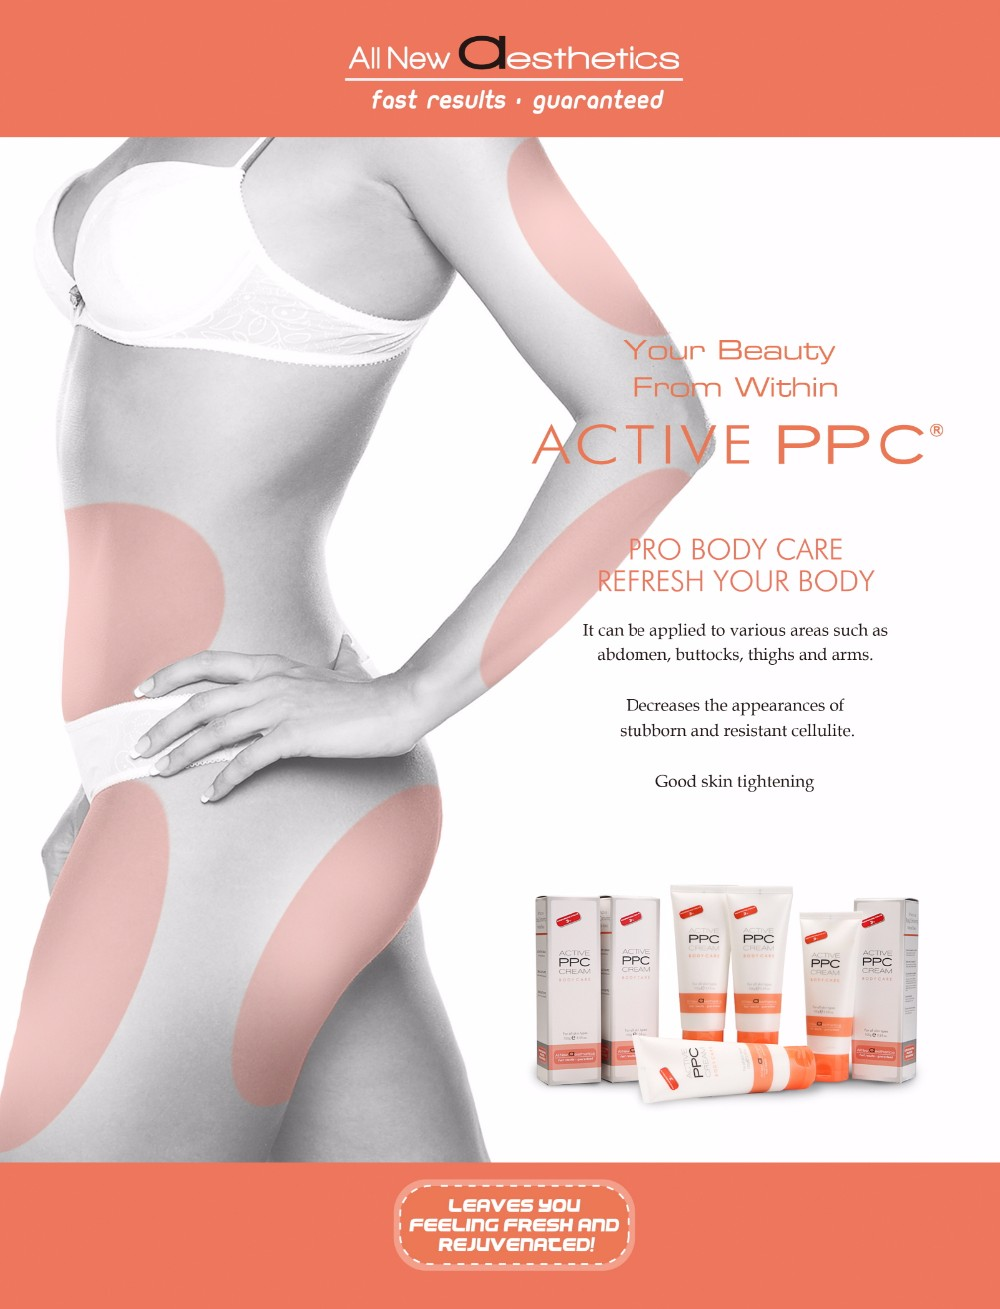 Active Ppc For Lipolysis Body Shaping And Slimming Cream,Lymph Draining And  Cellulite Loss By Hot Thermal Effect - Buy Cellulite Cream,Ppc